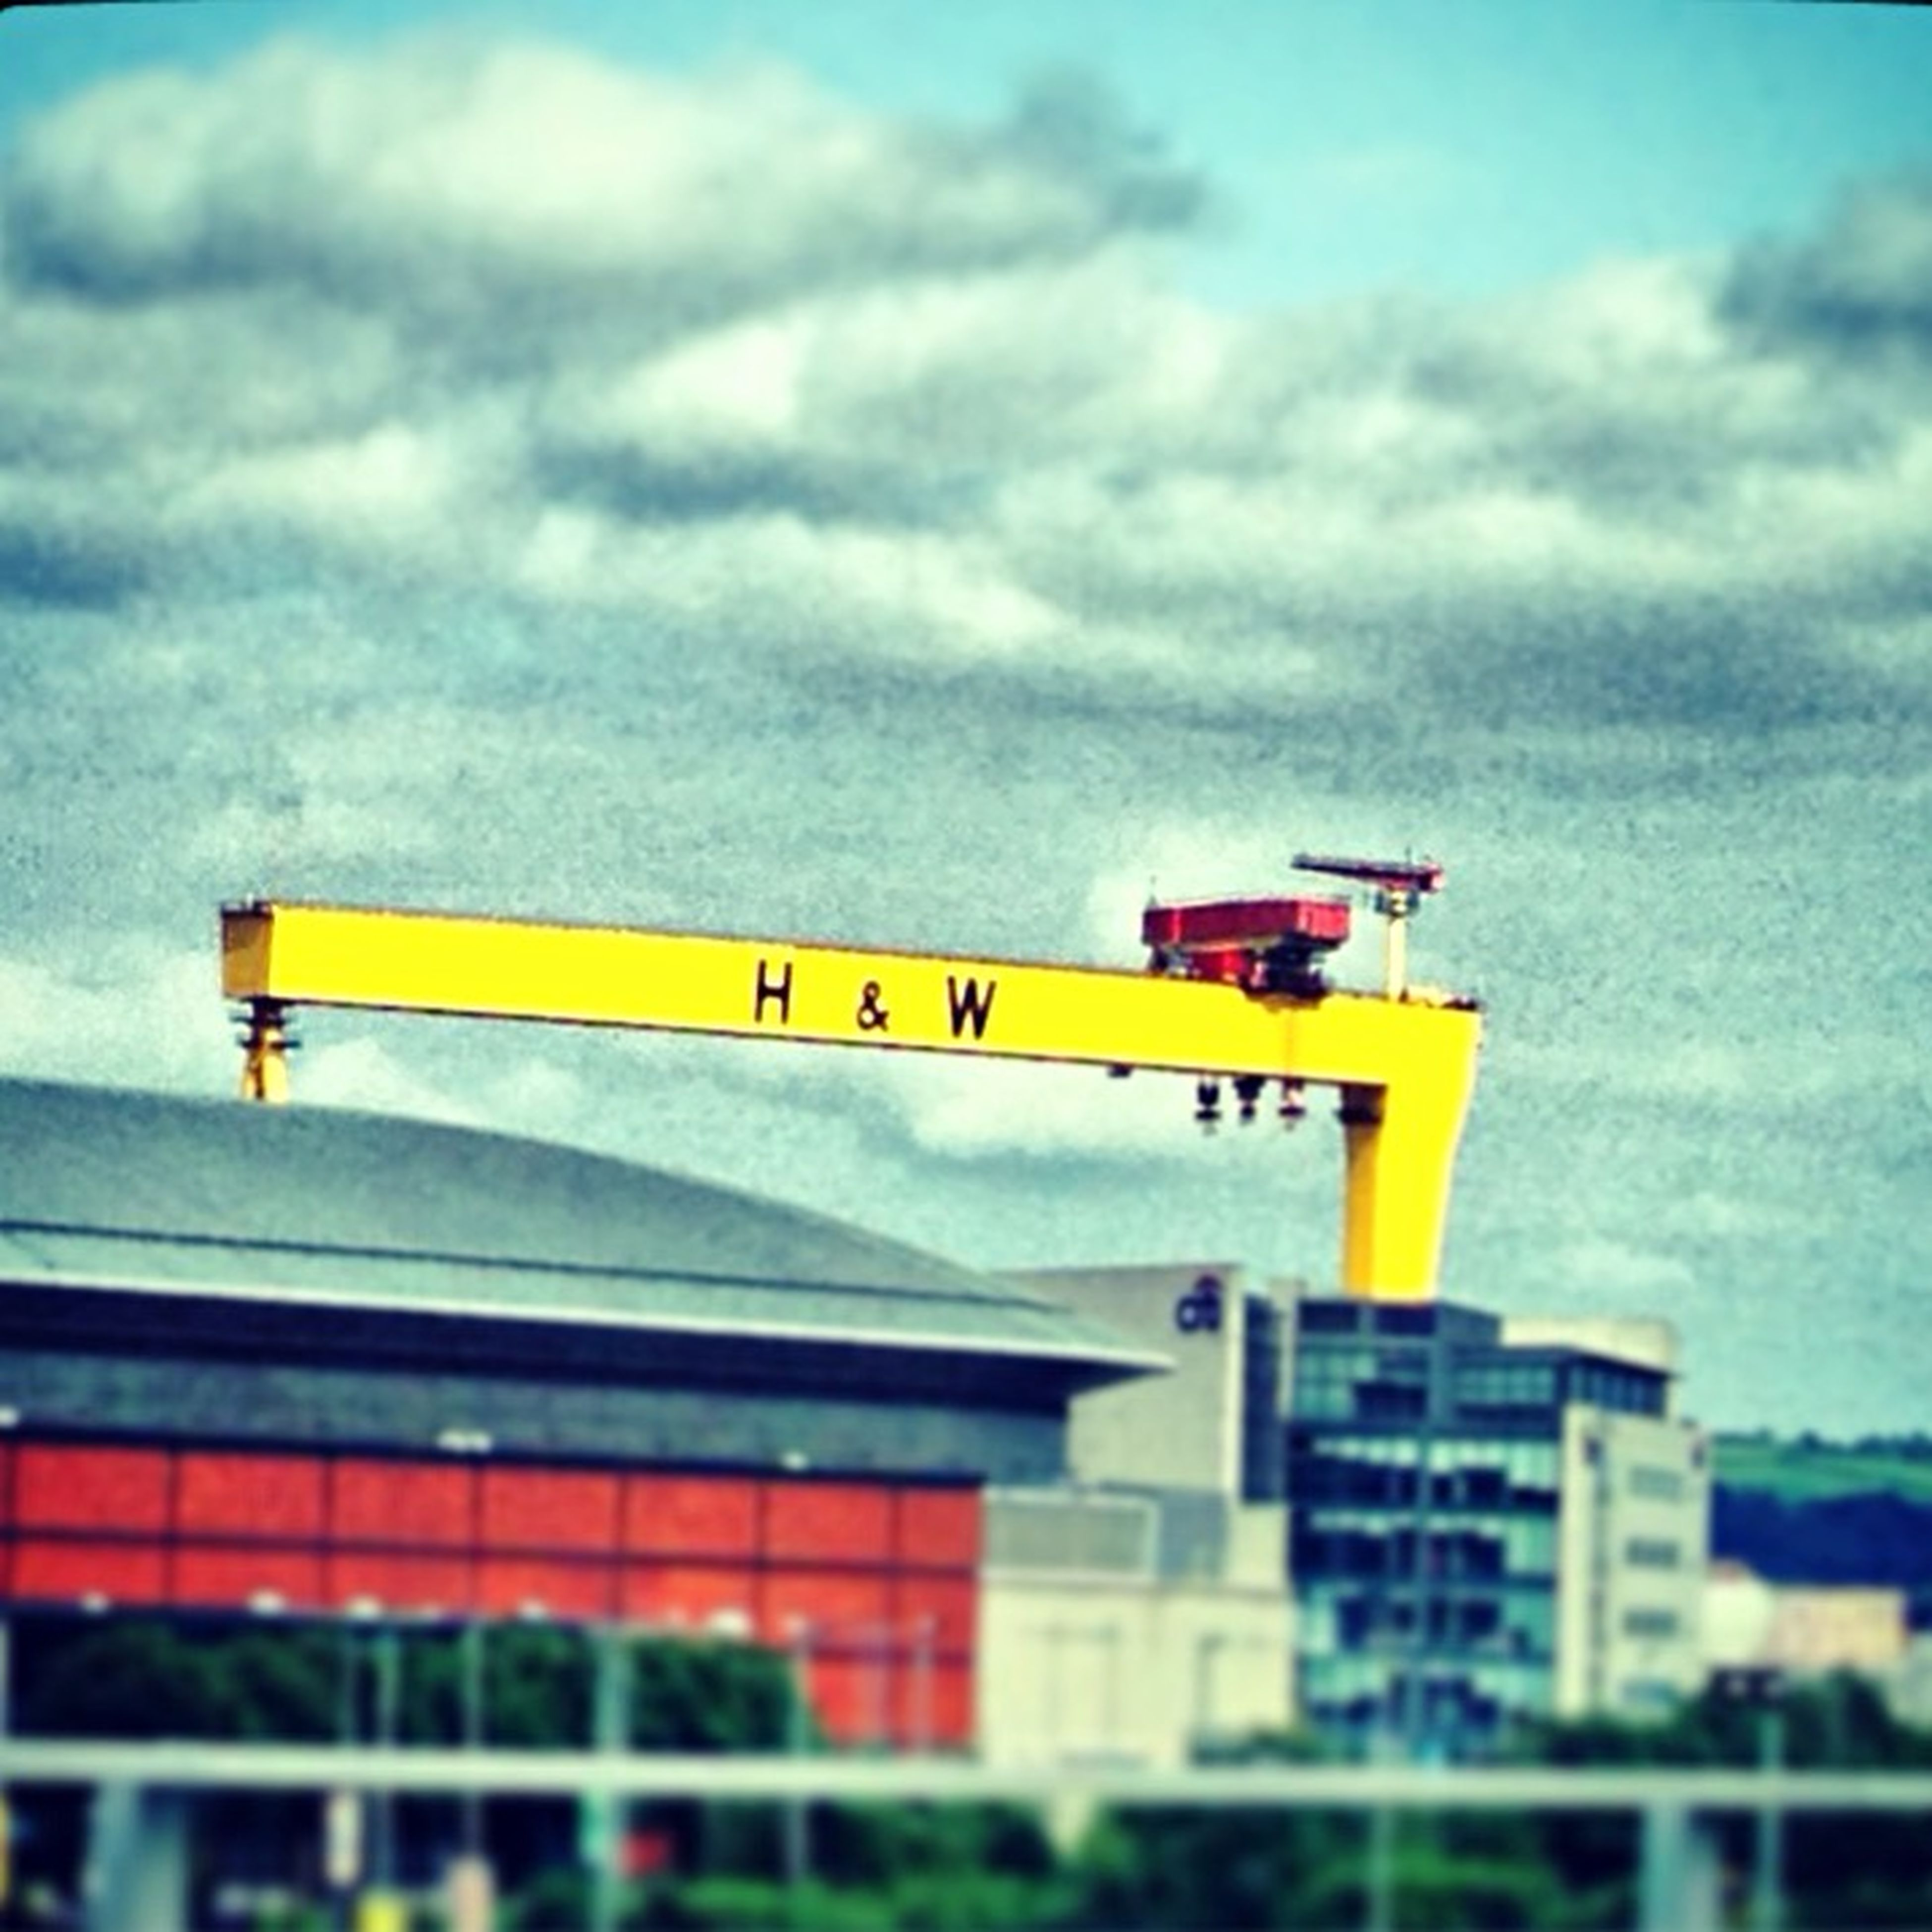 Belfast Titanic Shipyard Odyssey City Hello World Taking Photos Check This Out Northern Ireland Scenery